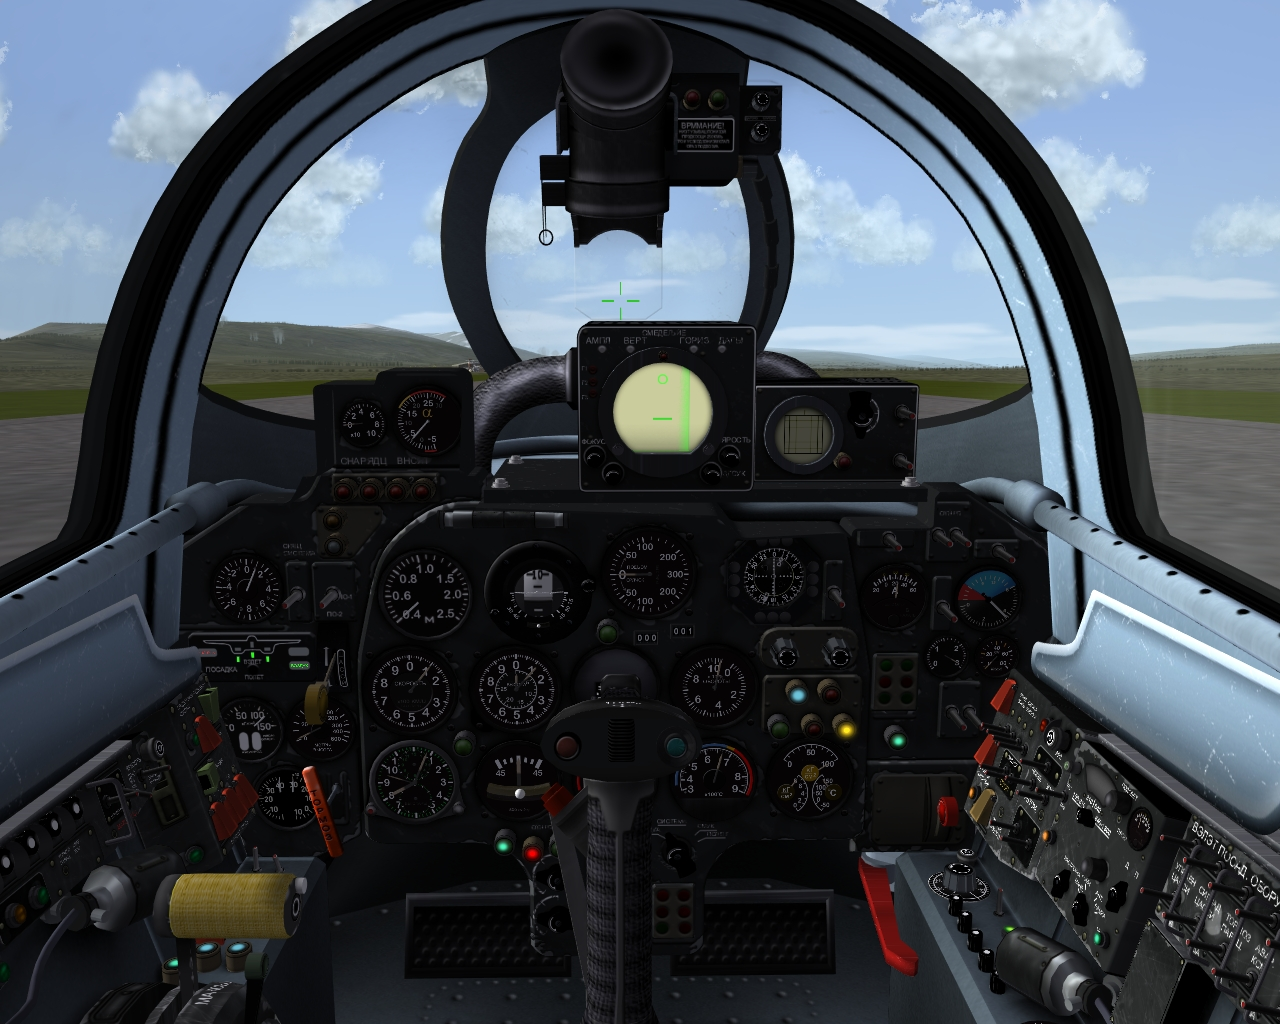 Su-9 Fishpot-B cockpit (for TW DLC model)